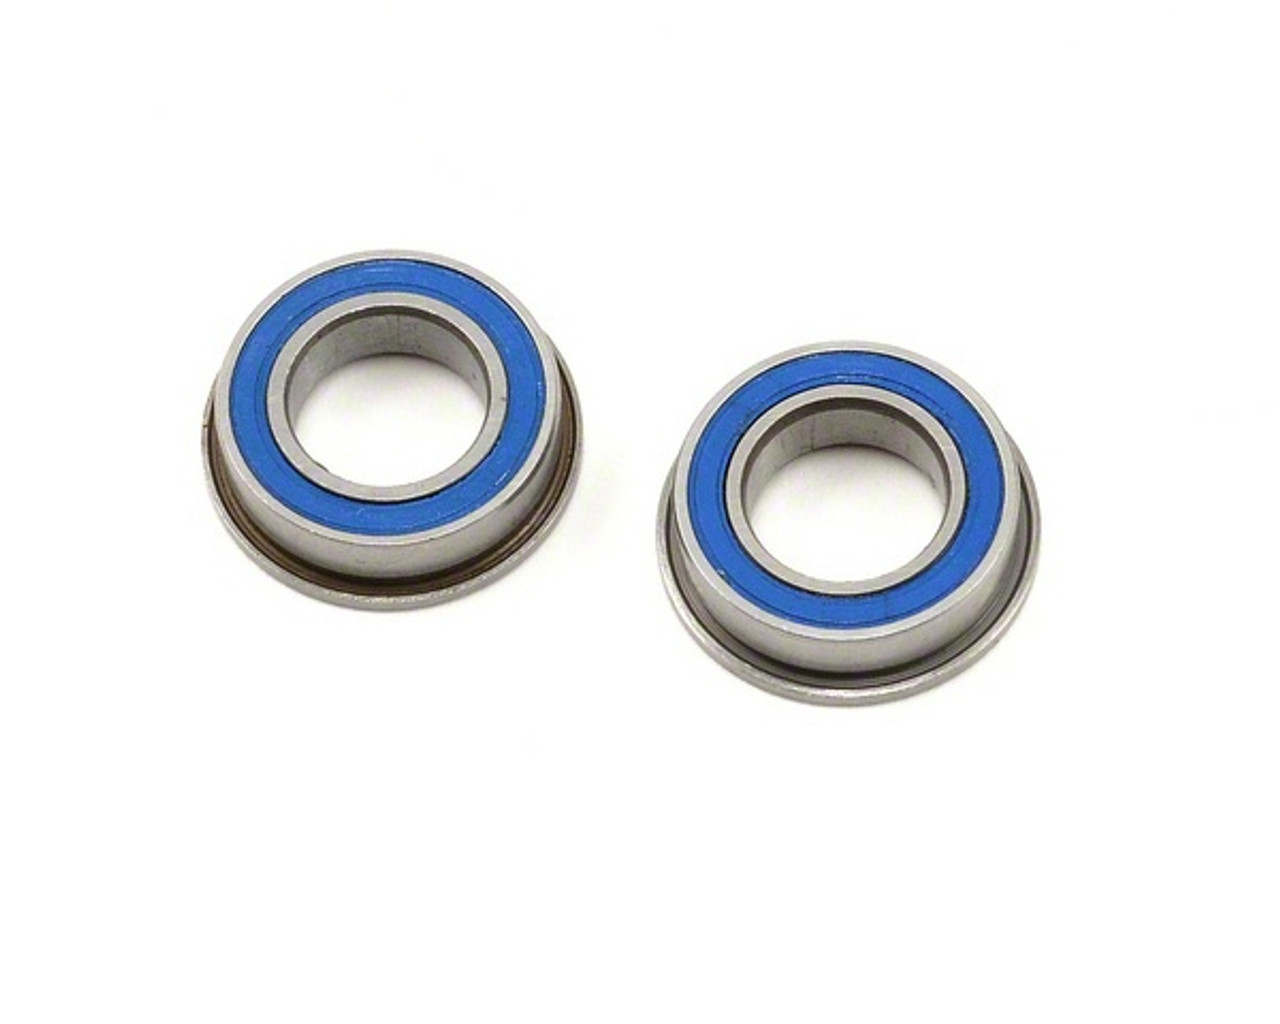 """5/32x5/16x1/8"""" Inch Series Flanged Rubber Sealed Bearings (2 Pack) (FR155 2RS)"""